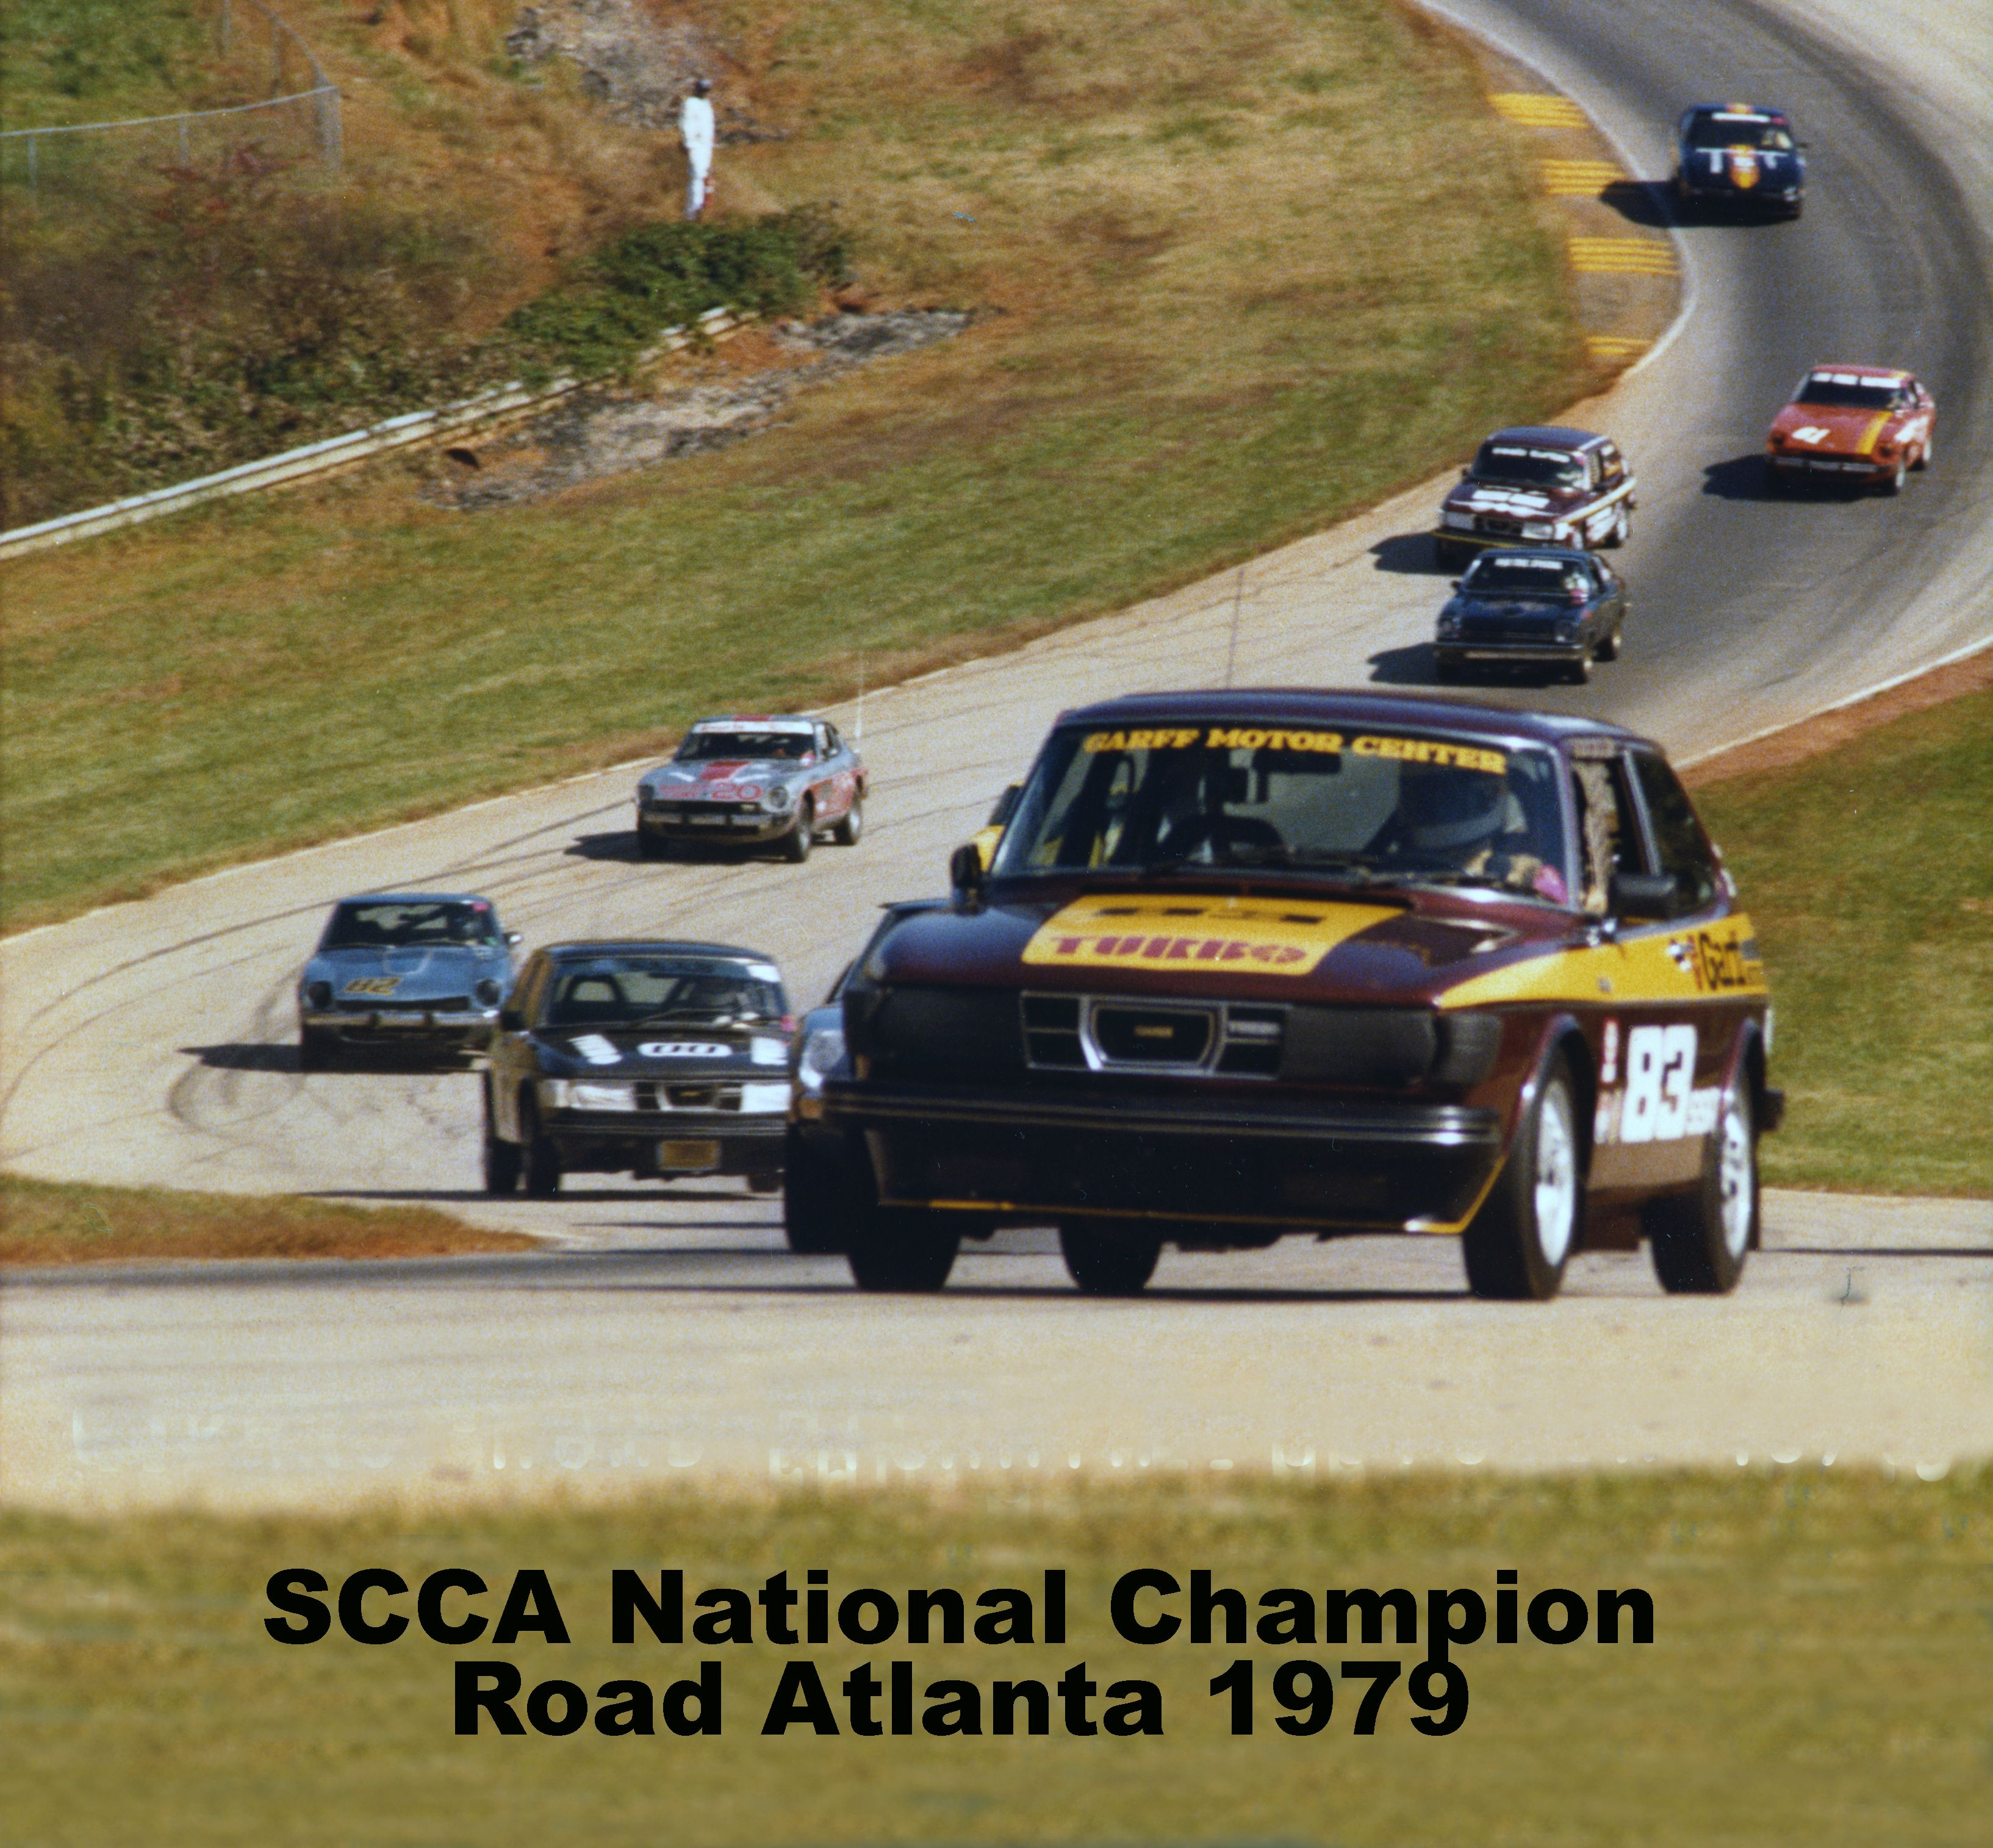 Car 52 Saab 99 Turbo My First Scca National Championship 10 27 79 Class Ssa It Was The Best Scca Runoffs Of Race Cars Race Car Driving National Champions